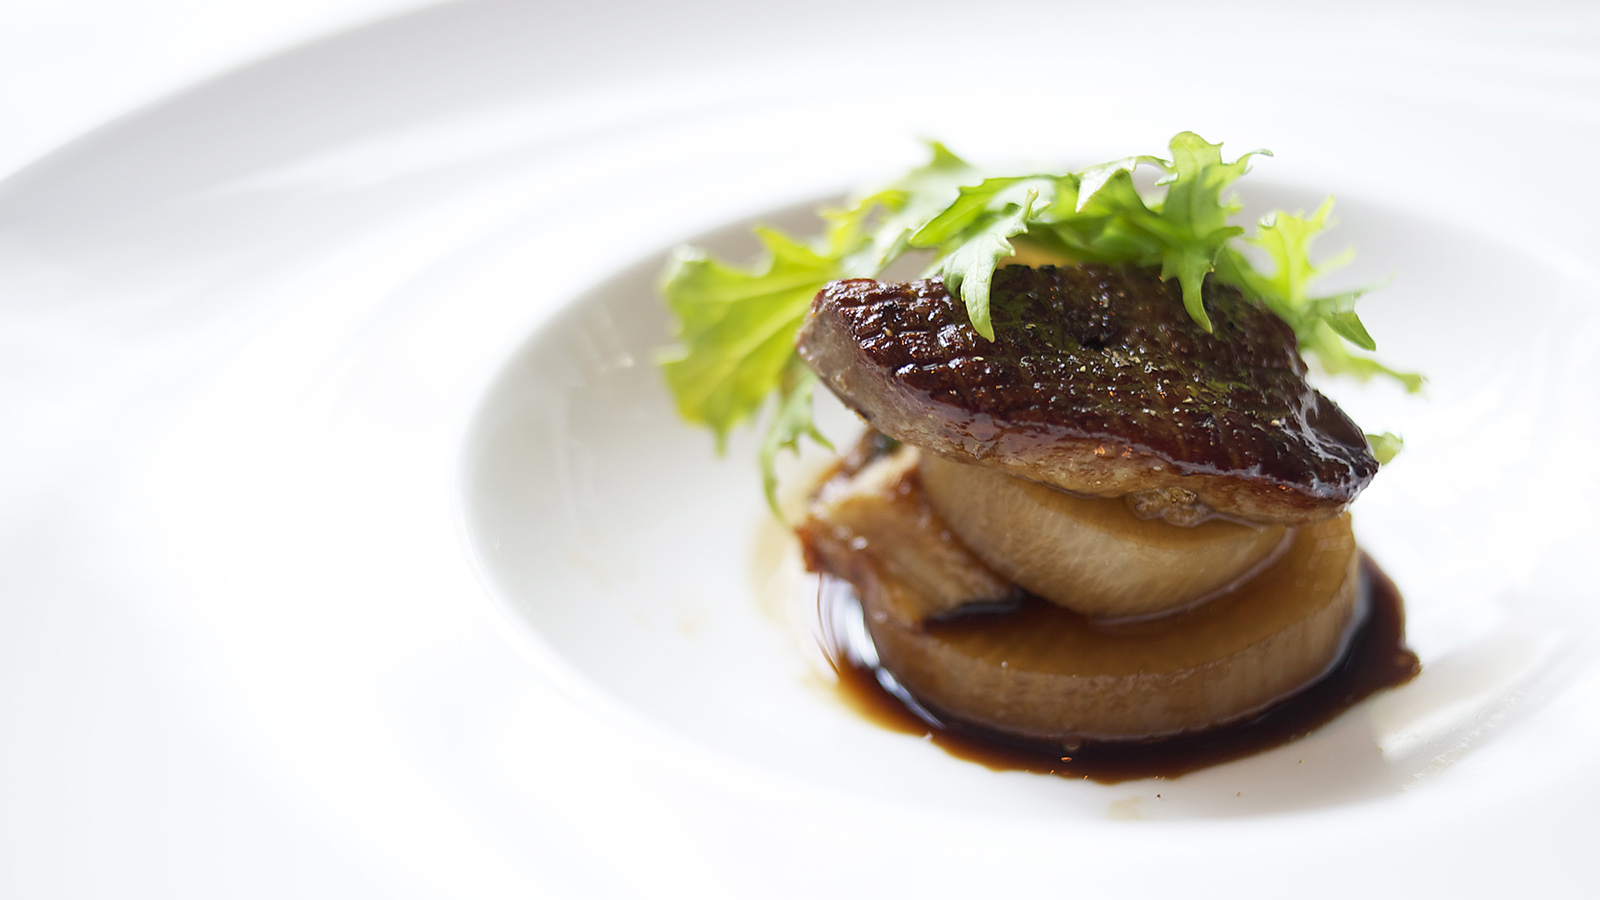 What Is Foie Gras, and Why Is It Being Banned?